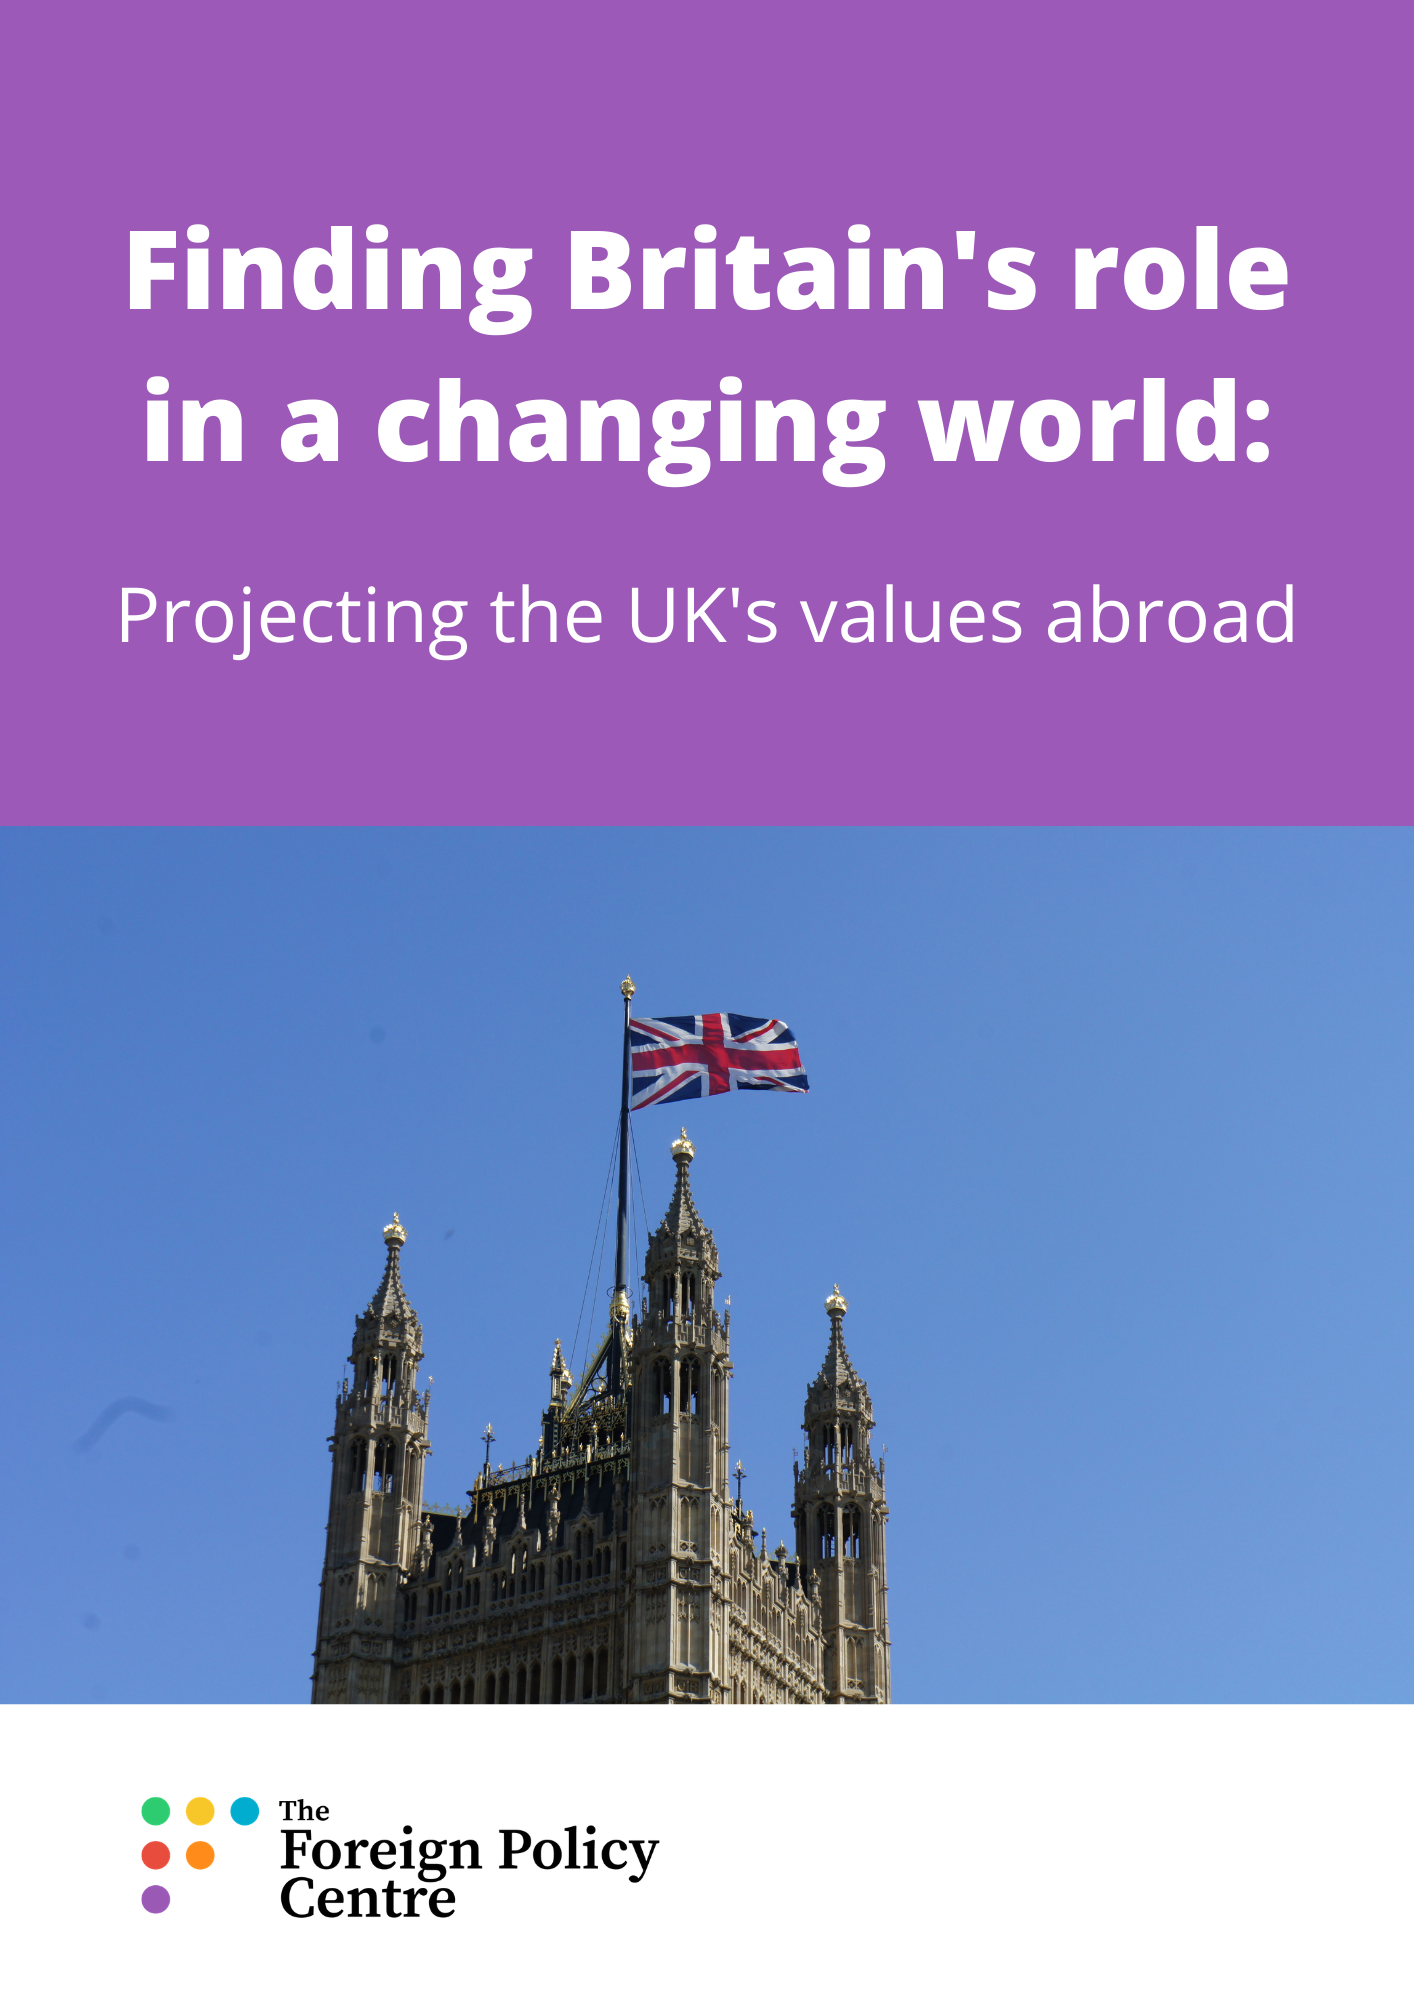 Projecting the UK's values abroad